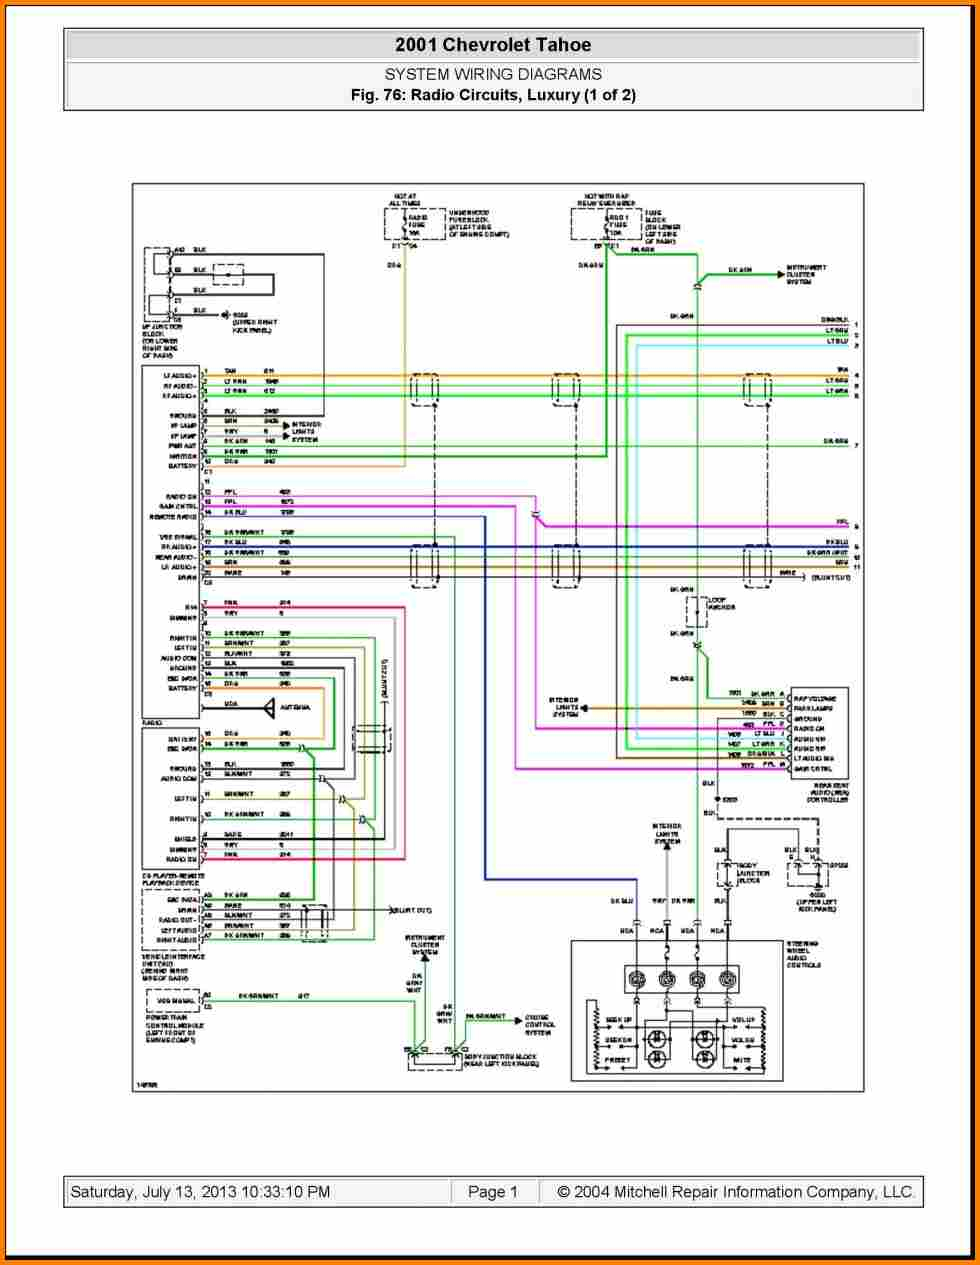 2004 Silverado Bose Radio Wiring Diagram Collection ...